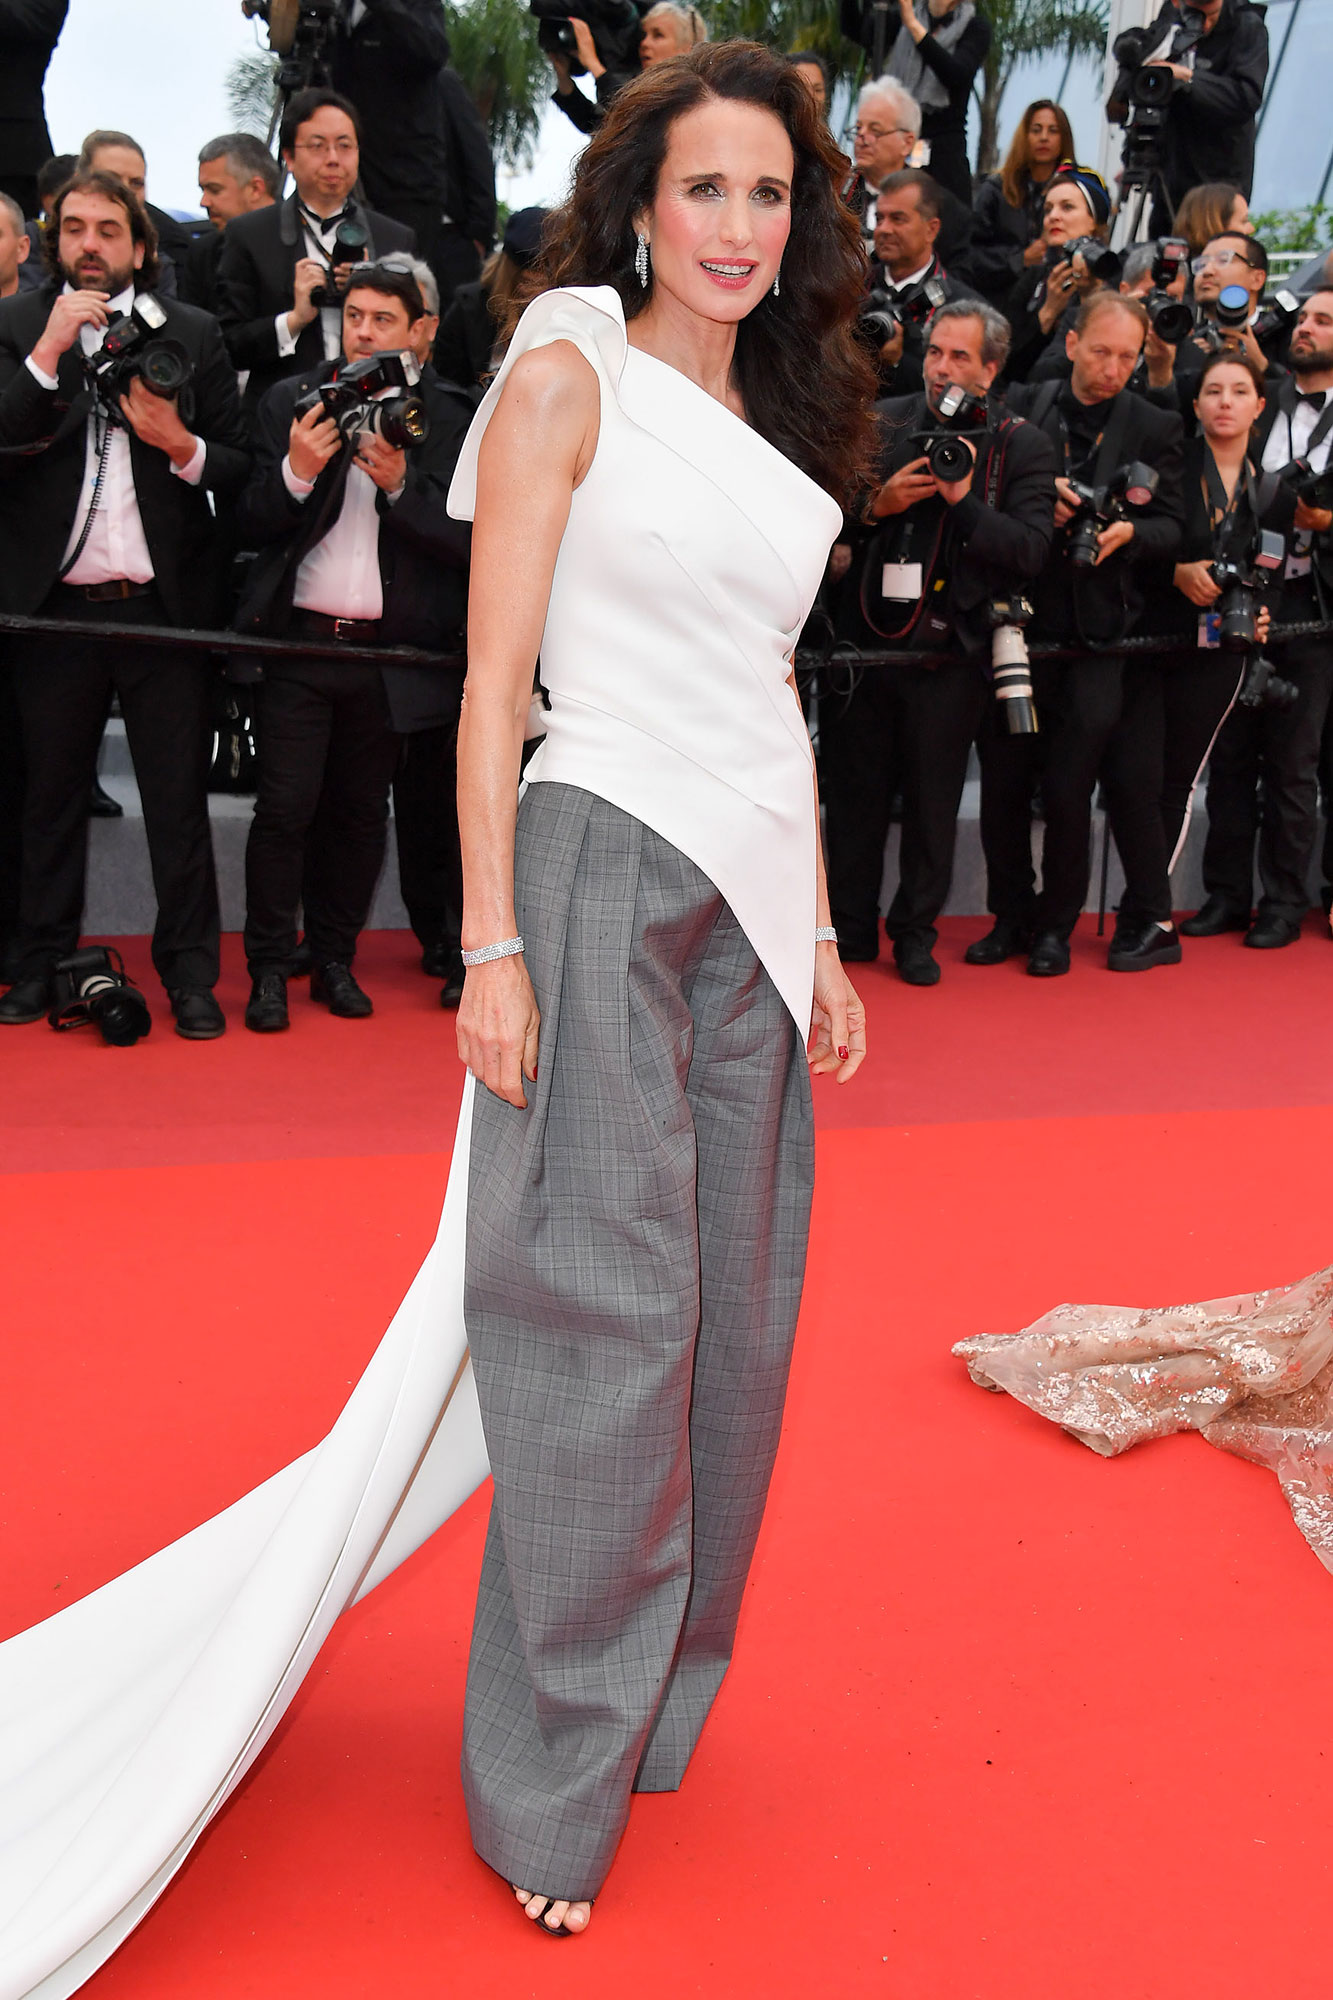 Stepping Out in Style at Cannes Film Festival - She wears the pants! The actress rocked Alaïa trousers with her one-shoulder Toni Maticevski top and Chopard jewels at the Les Plus Belles Annees D'Une Vie screening on Saturday, May 18.